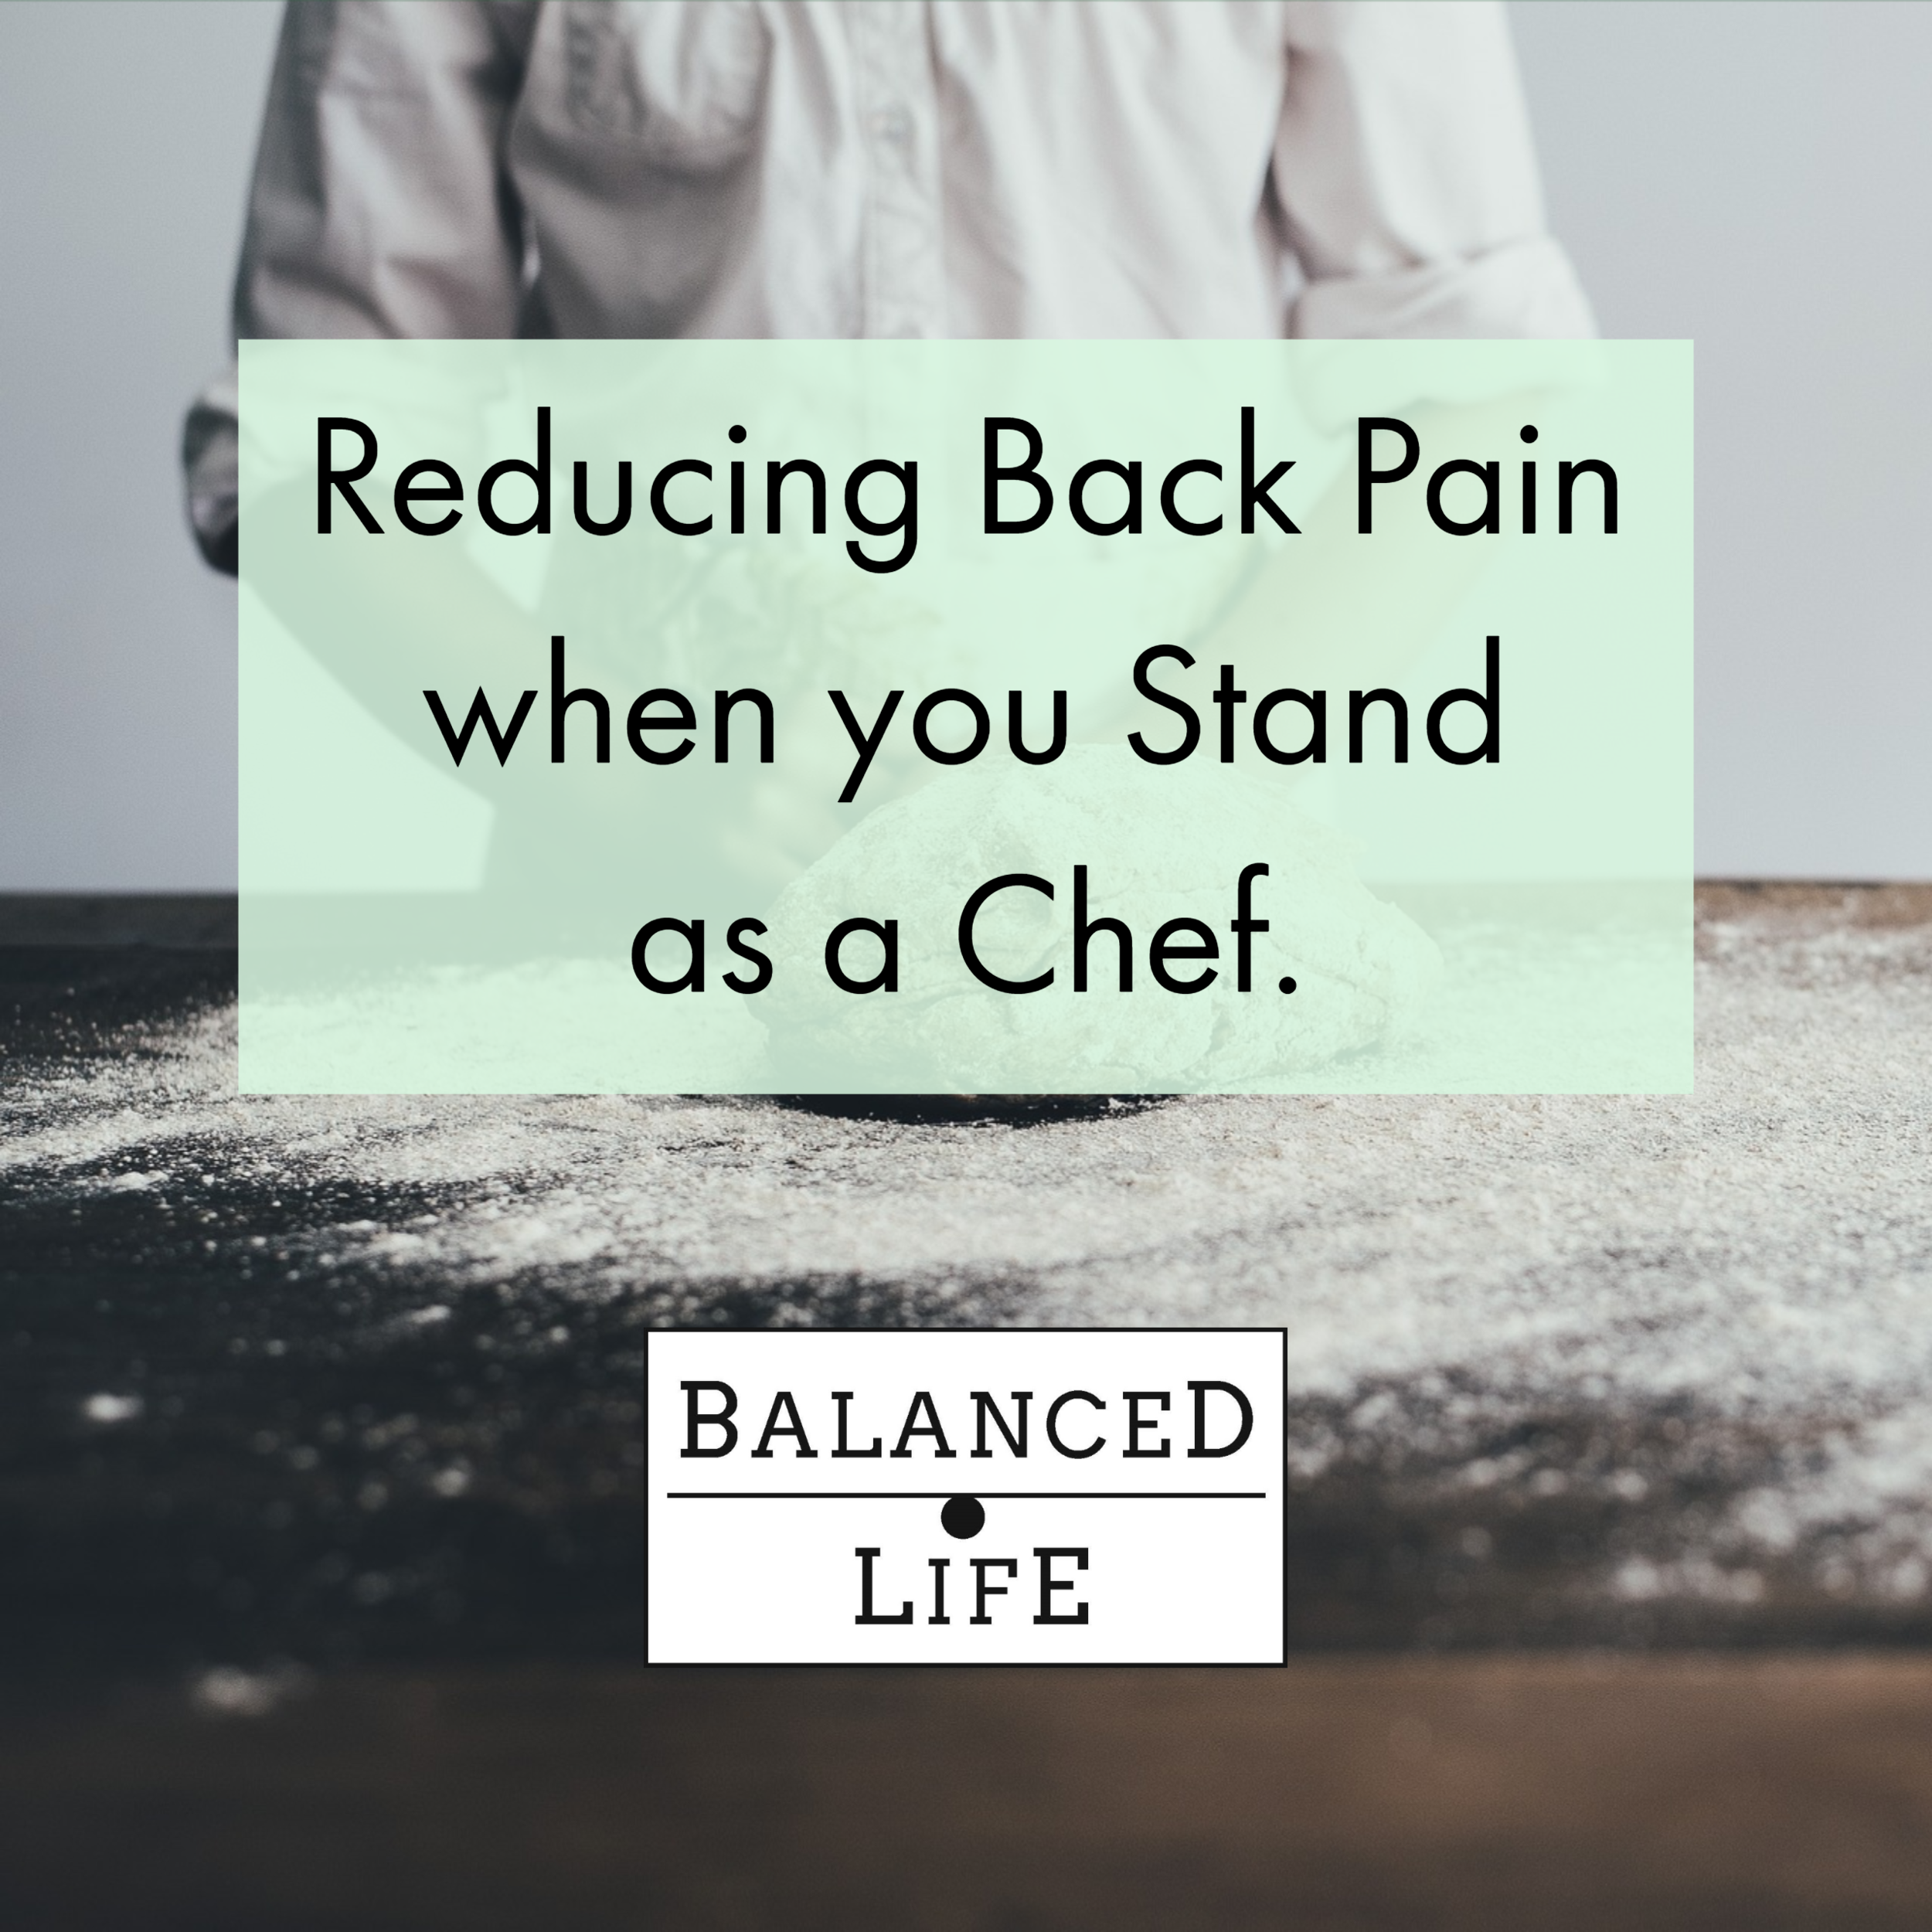 Reducing Back Pain when you Stand as a Chef.